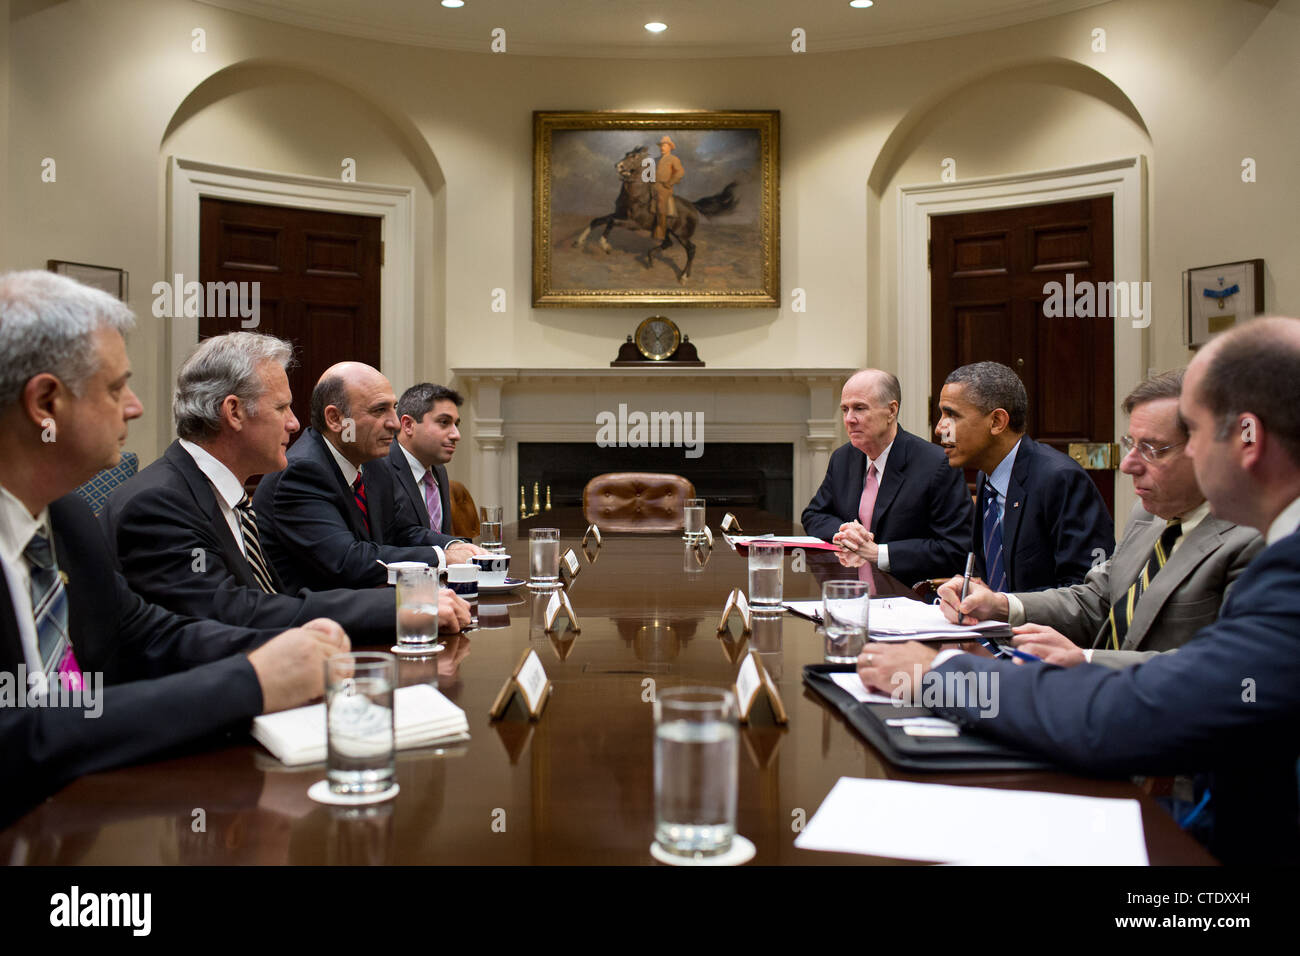 US President Barack Obama drops by a meeting between National Security Advisor Tom Donilon and Deputy Prime Minister - Stock Image